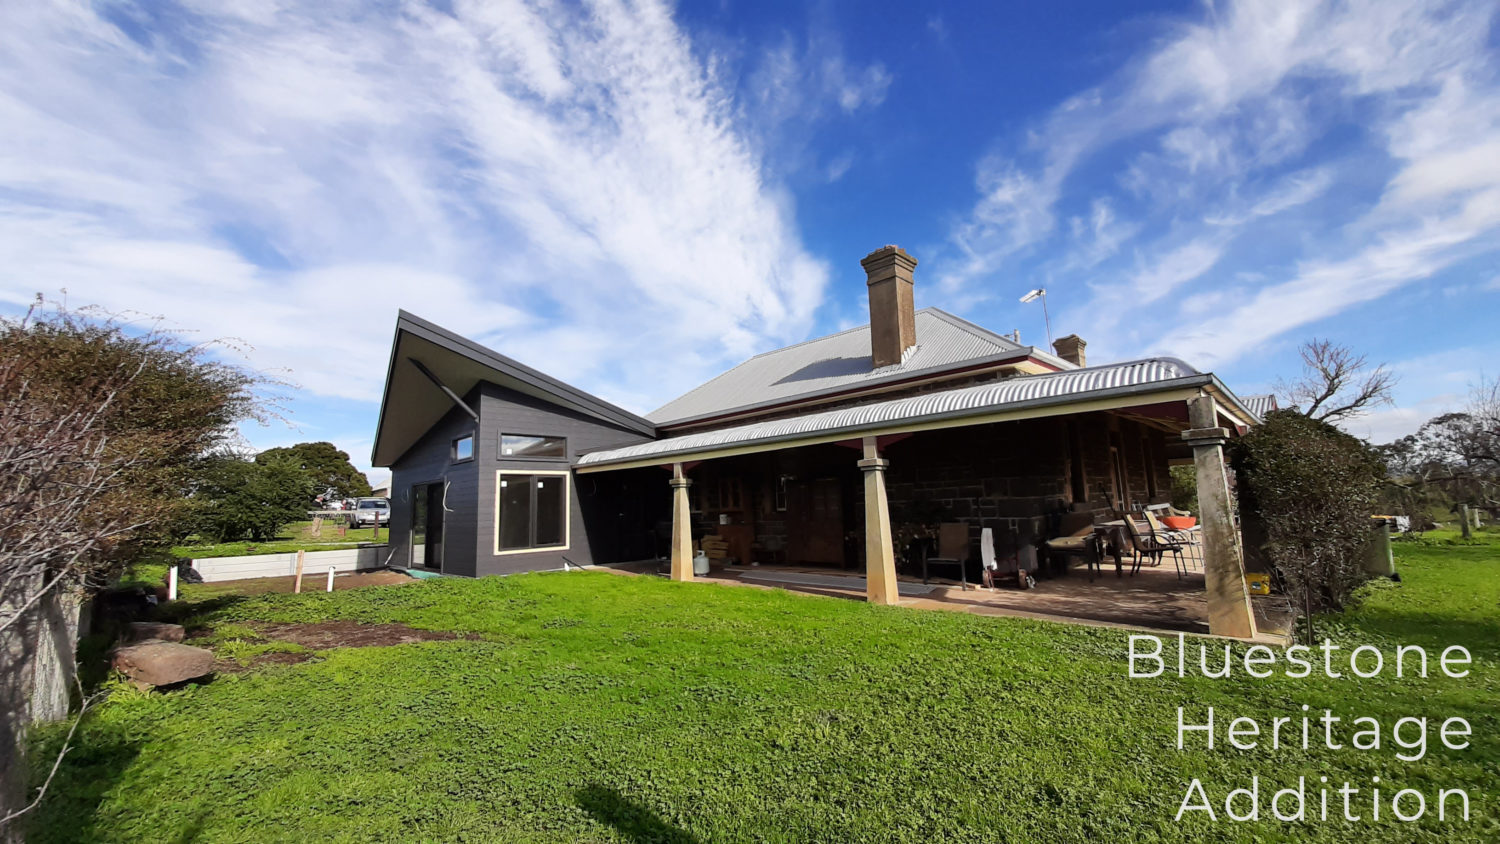 Modern addition to heritage bluestone farmhouse